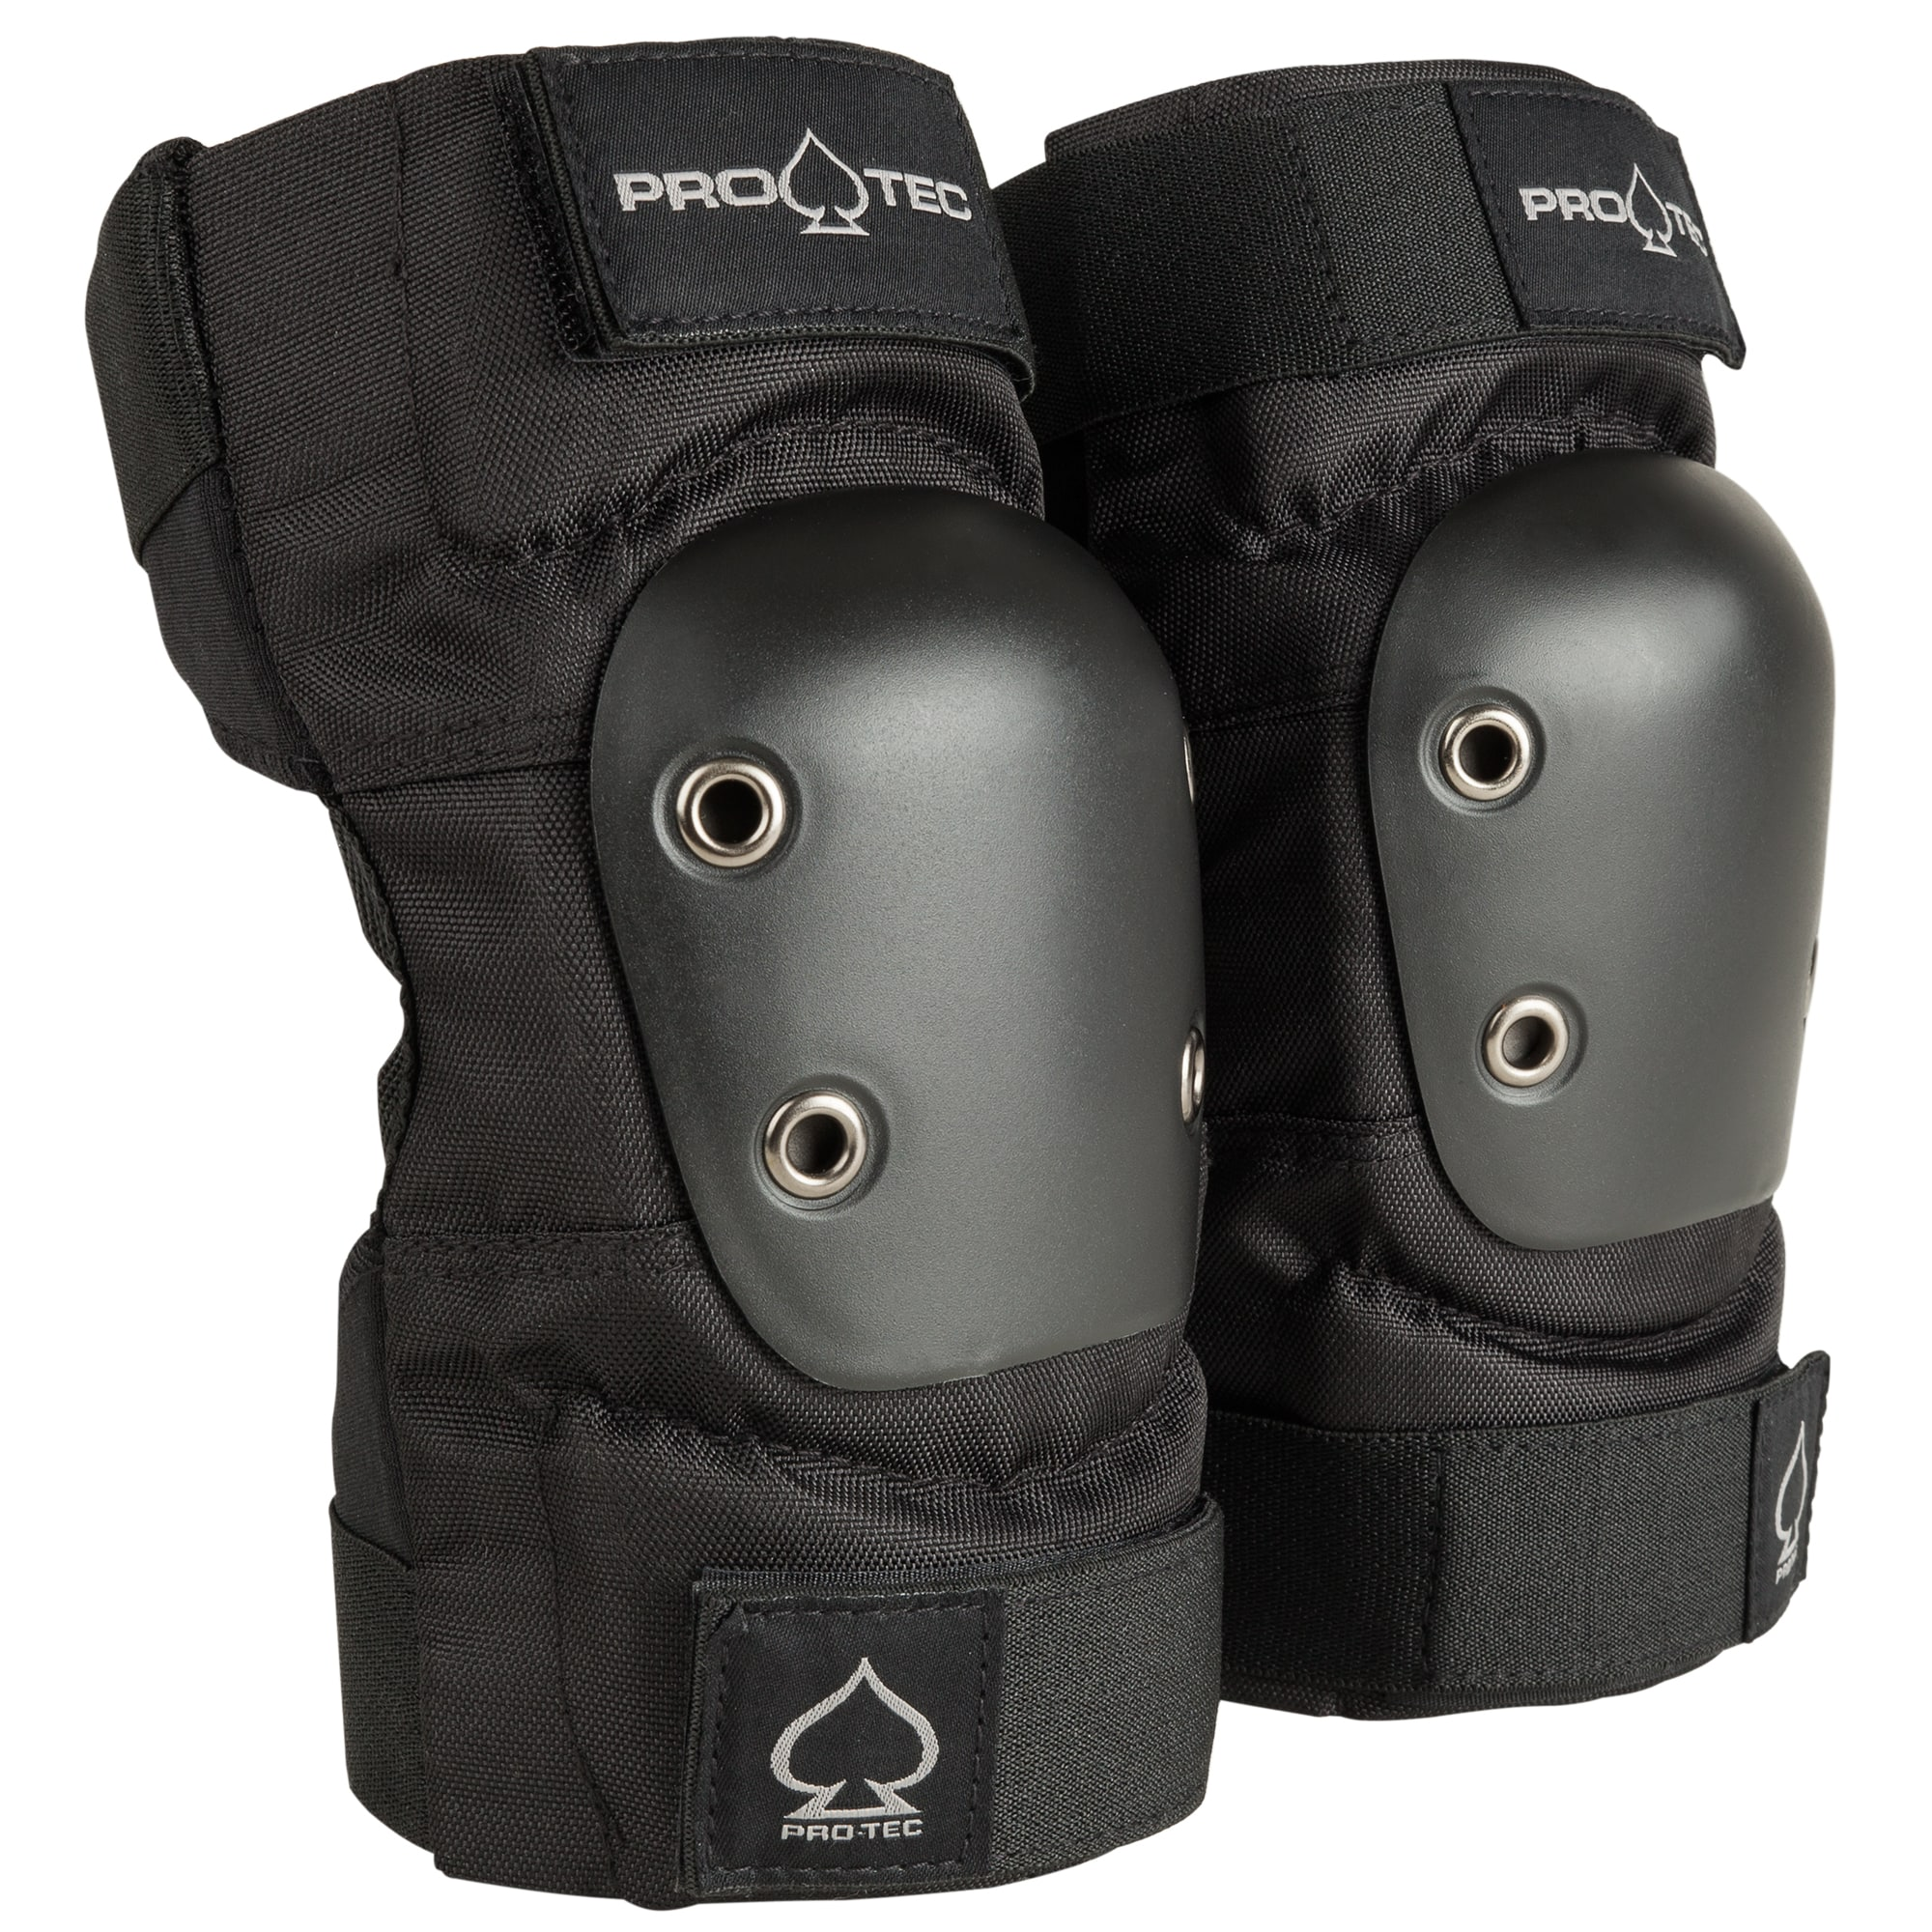 Pro-Tec Street Elbow Pads Review thumbnail